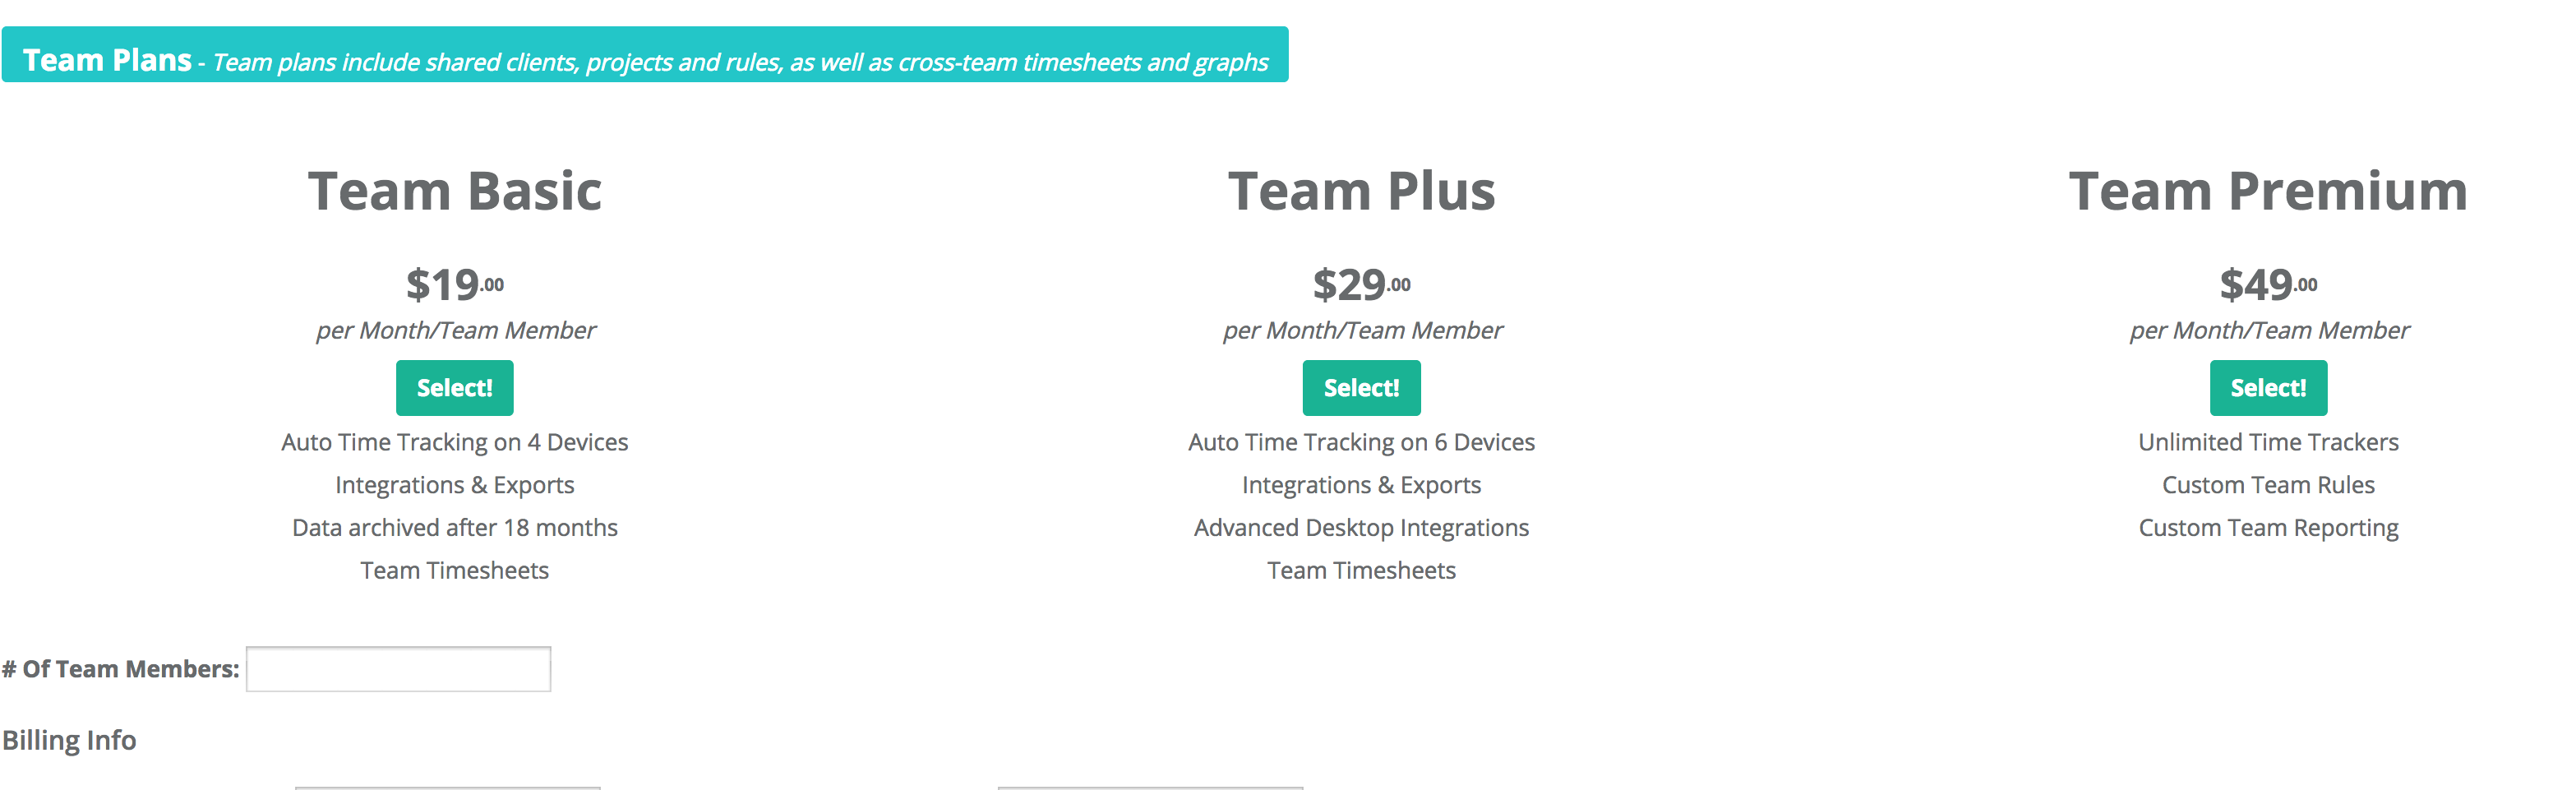 pricing_team.png